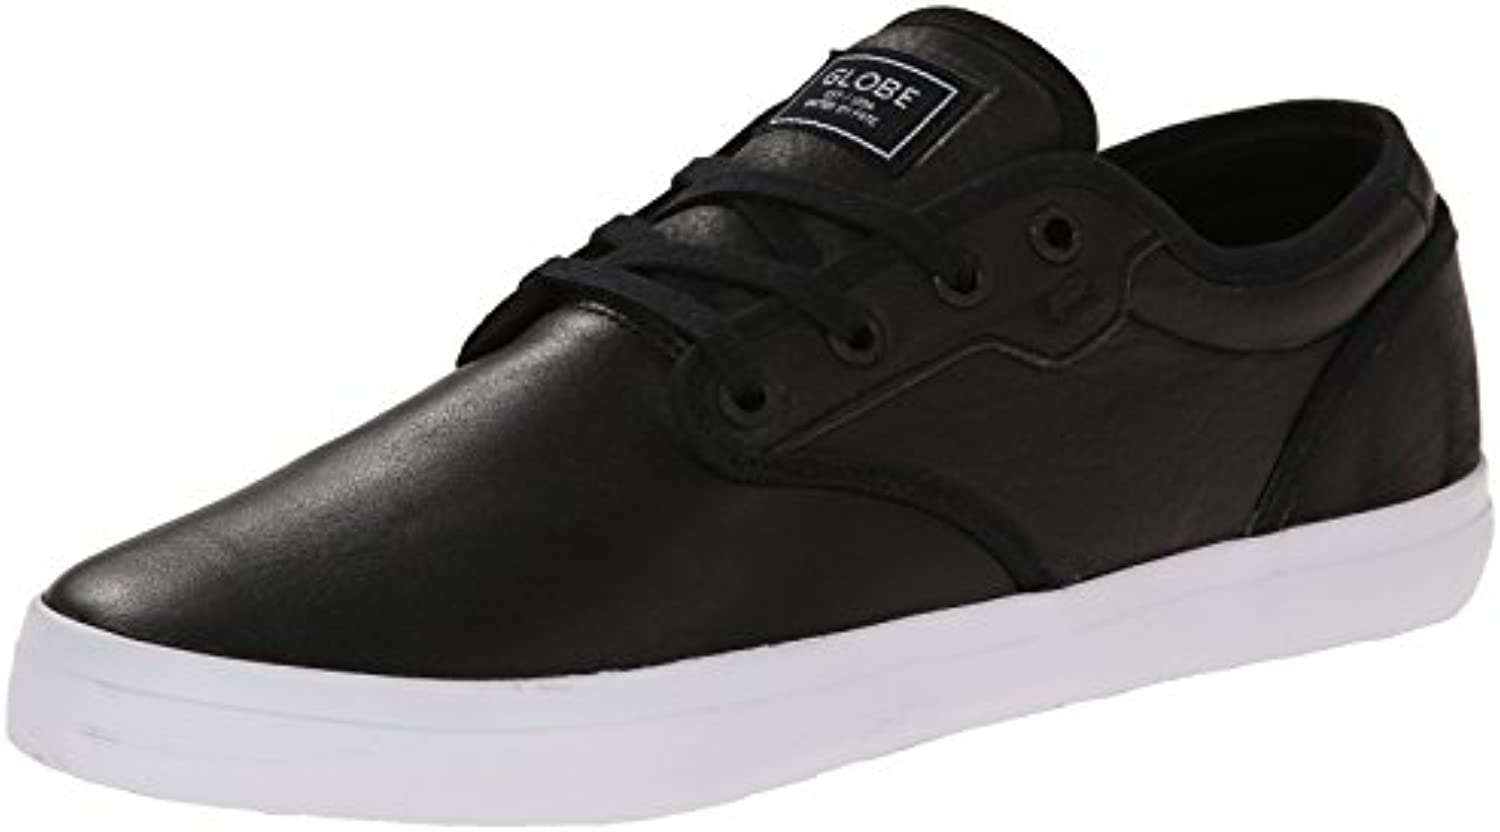 Globe Men's Motley Skateboard Shoe  Black Fog  6 M US